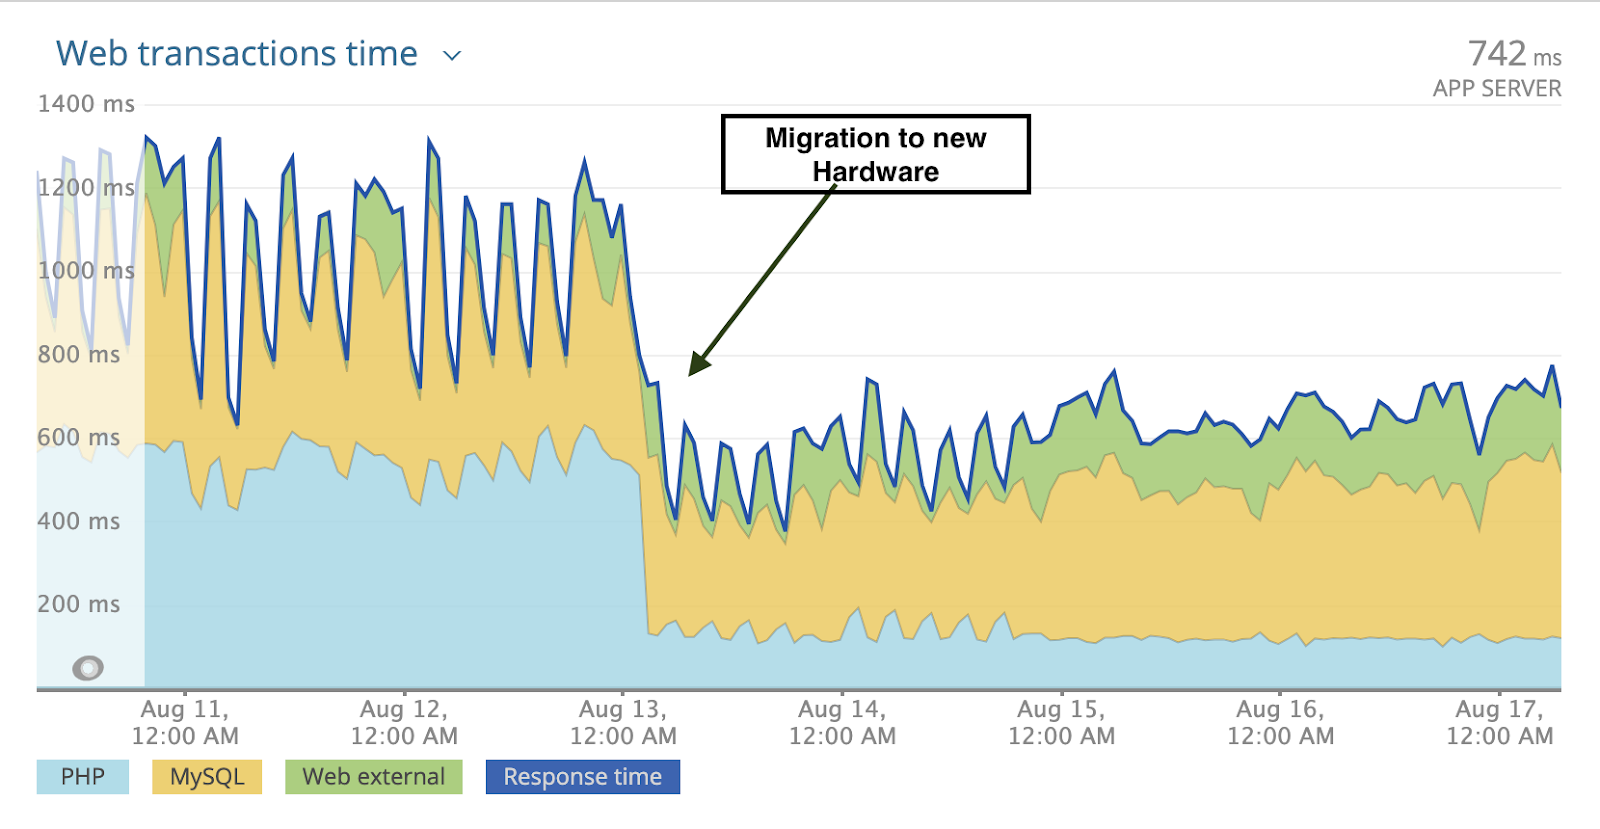 Customers like the one above are seeing up to a 40% drop in server execution time after migrating to Google's next-gen hardware.